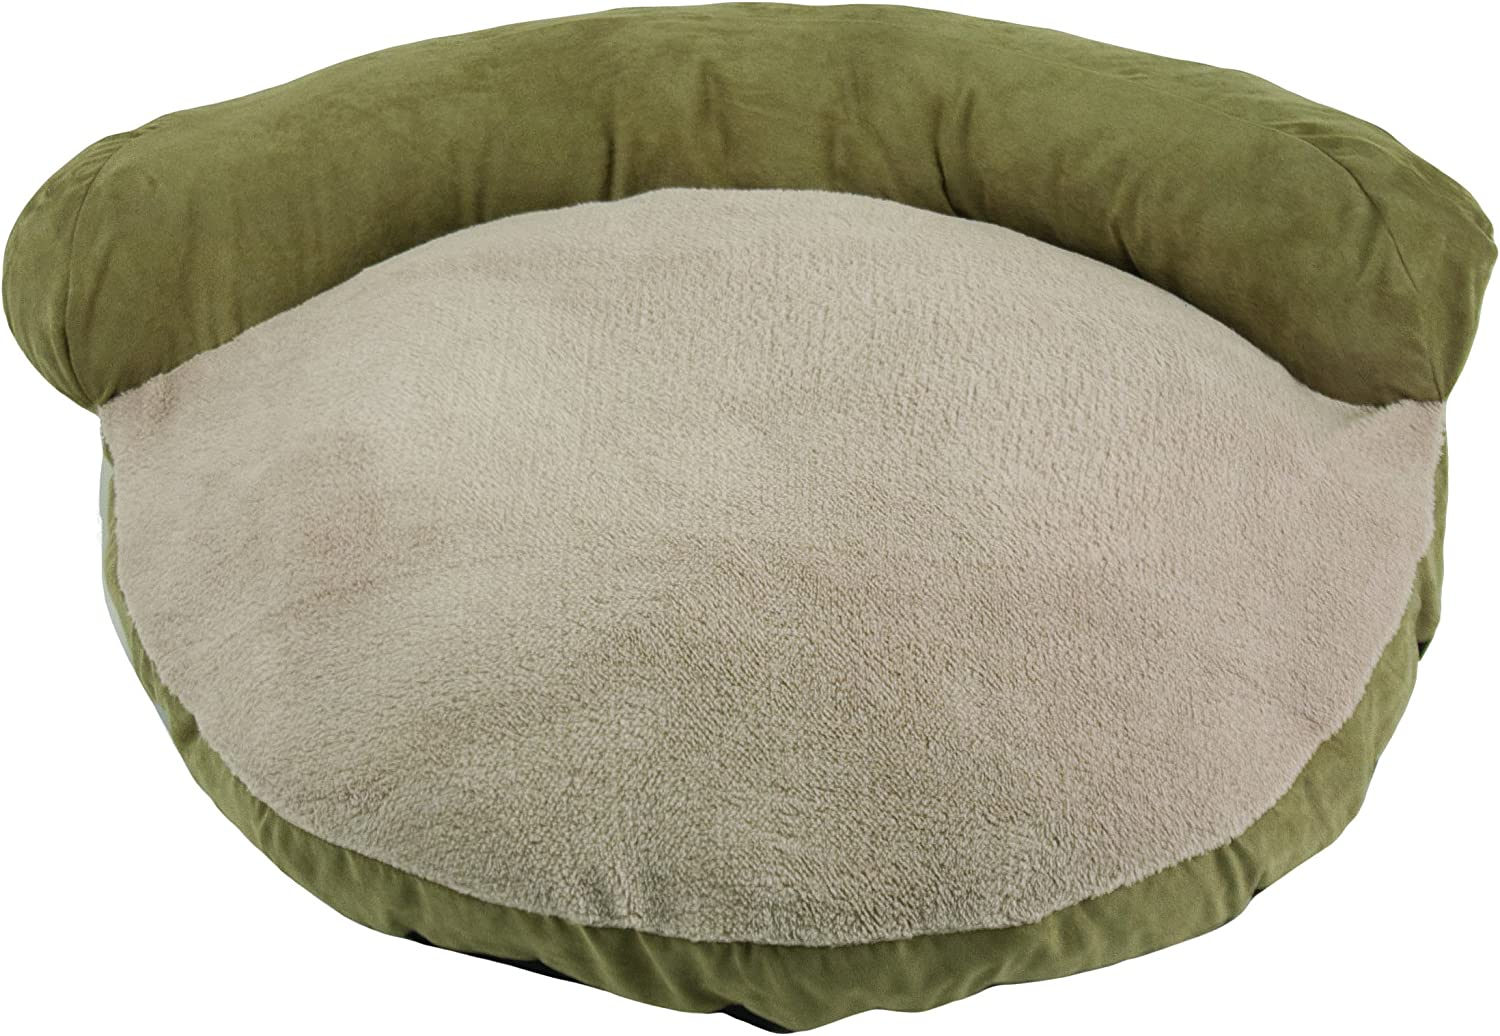 Dallas Manufacturing Co. Products Faux Suede Couch Pet Bed, 34Inch, Sage